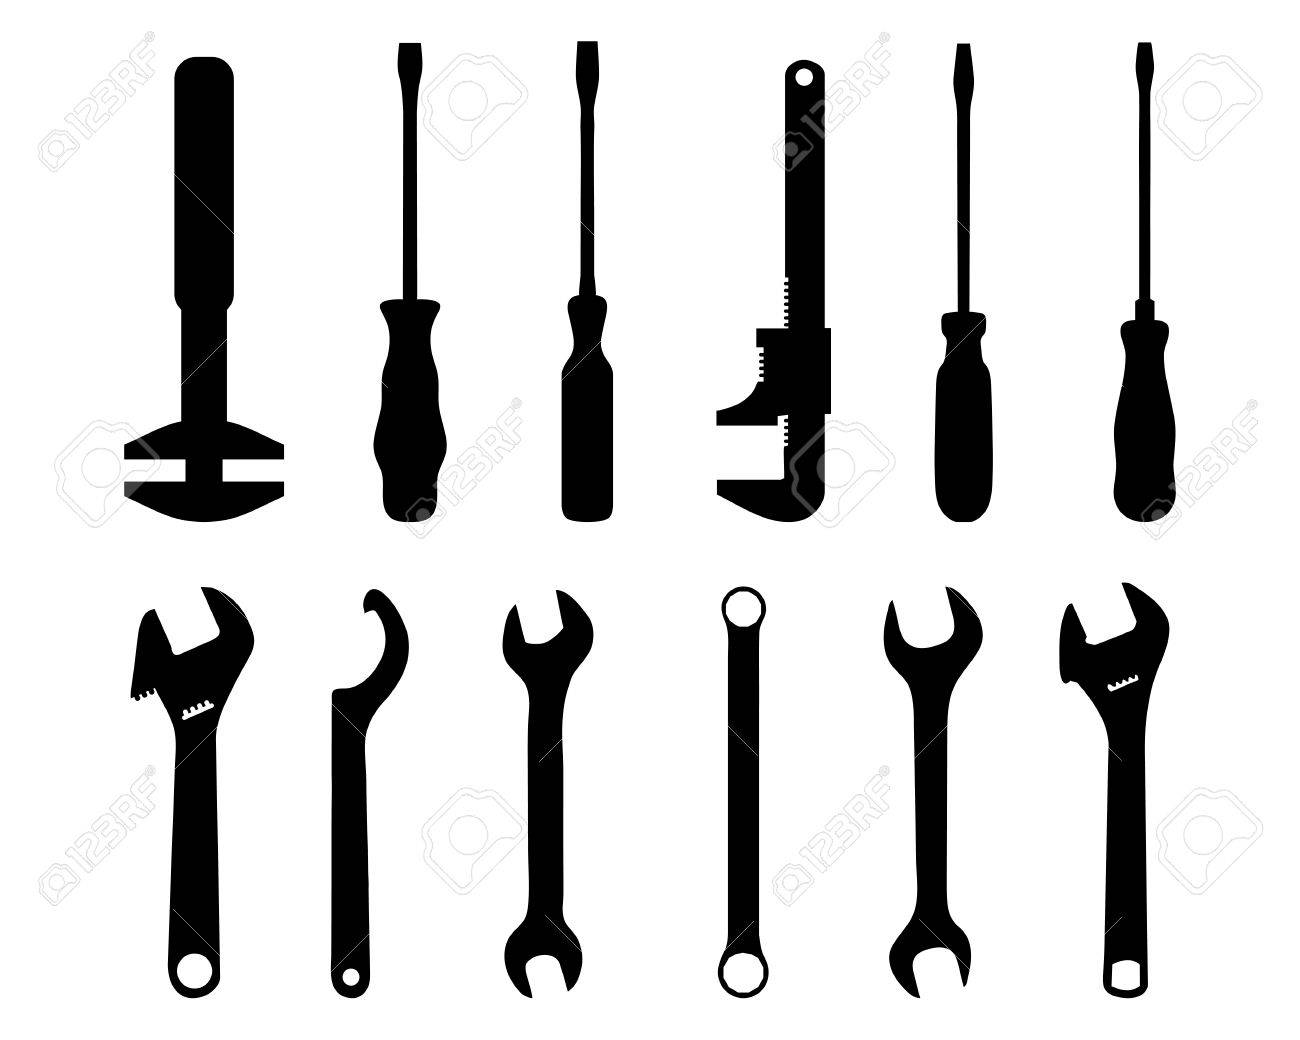 Wrench Black Vector Black silhouettes of